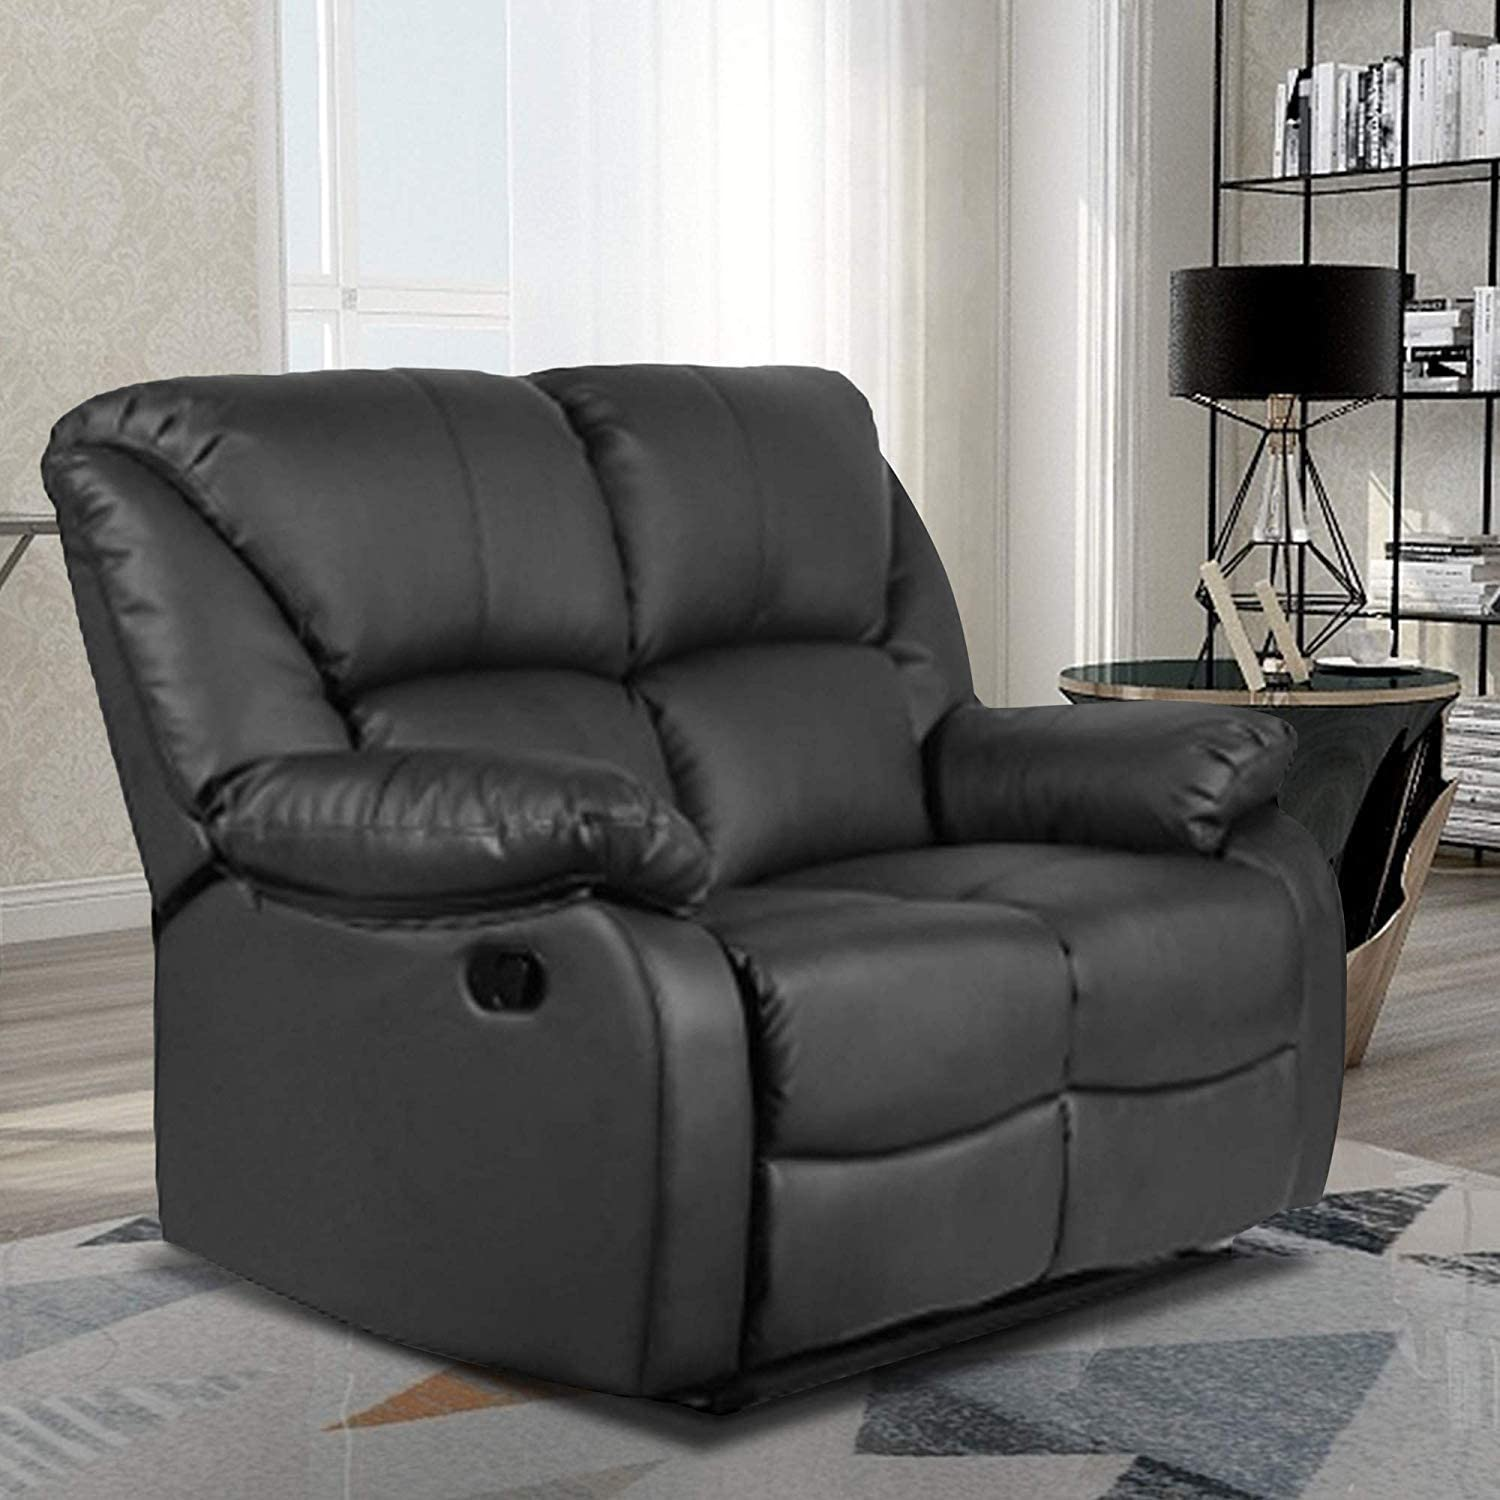 : Recliner Sofa for Living Room Leather Recliner